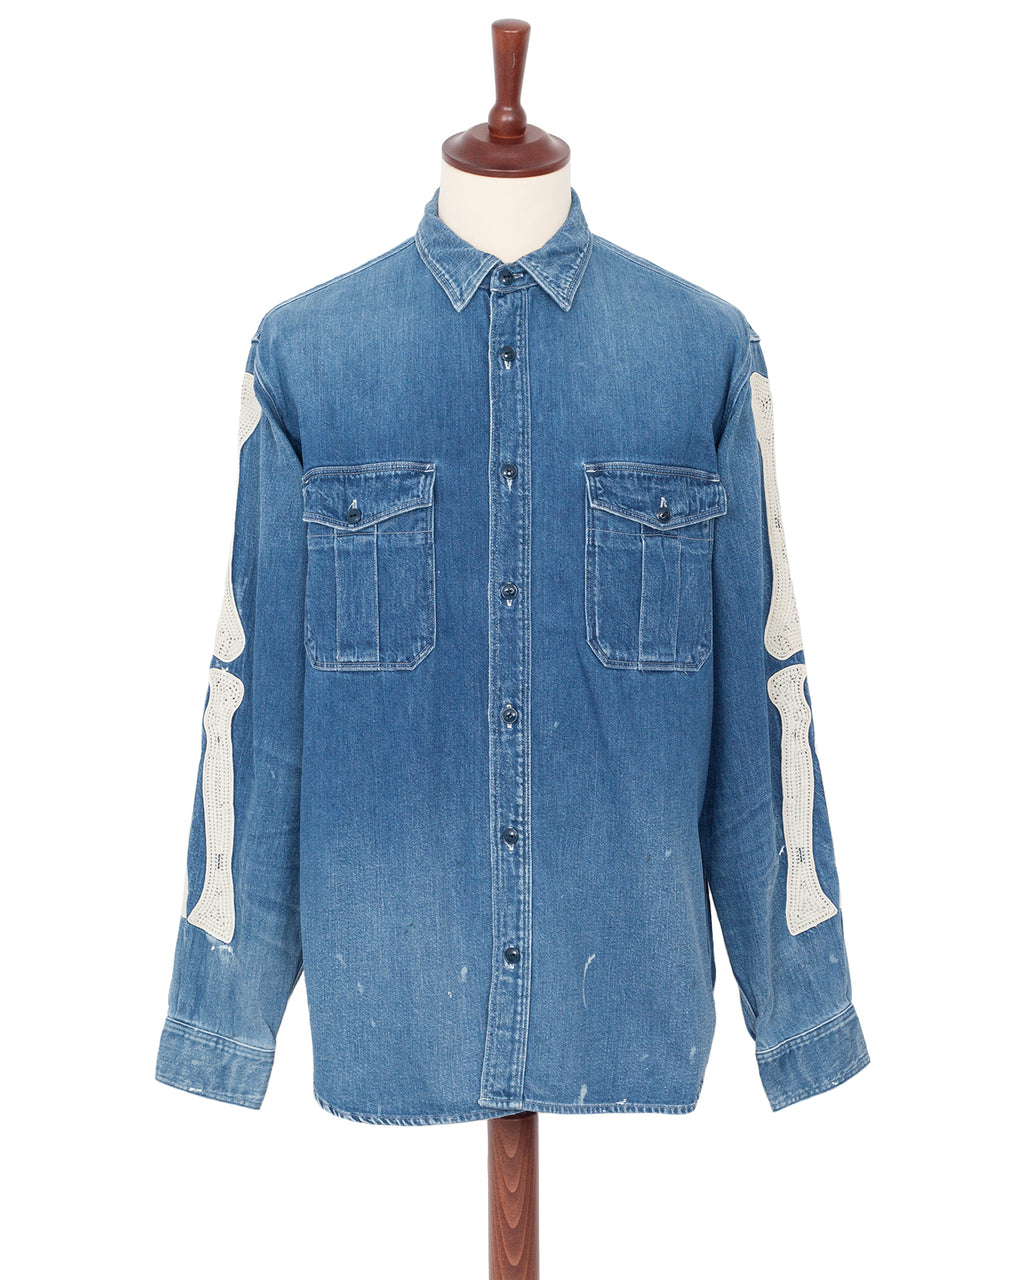 Kapital 8oz Denim Work Shirt, Bone Embroidery